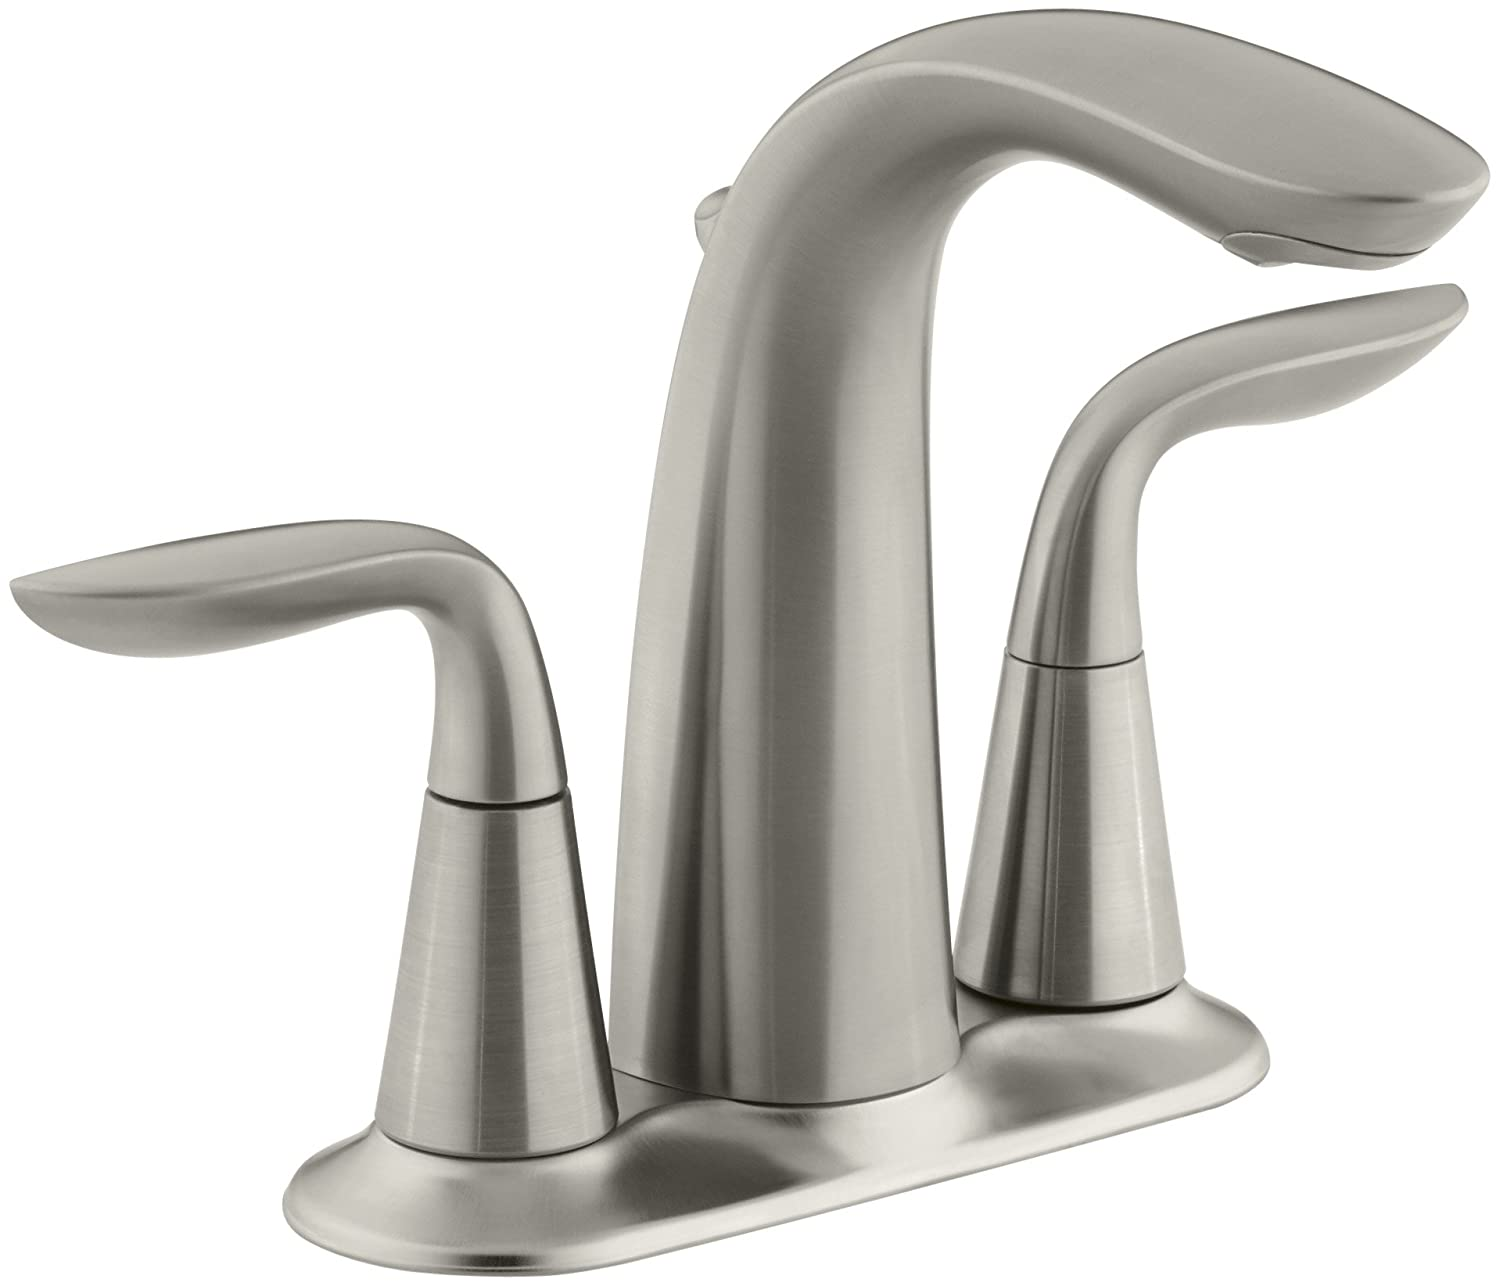 kohler k 5316 4 bn refinia centerset lavatory faucet vibrant kohler k 5316 4 bn refinia centerset lavatory faucet vibrant brushed nickel touch on bathroom sink faucets amazon com